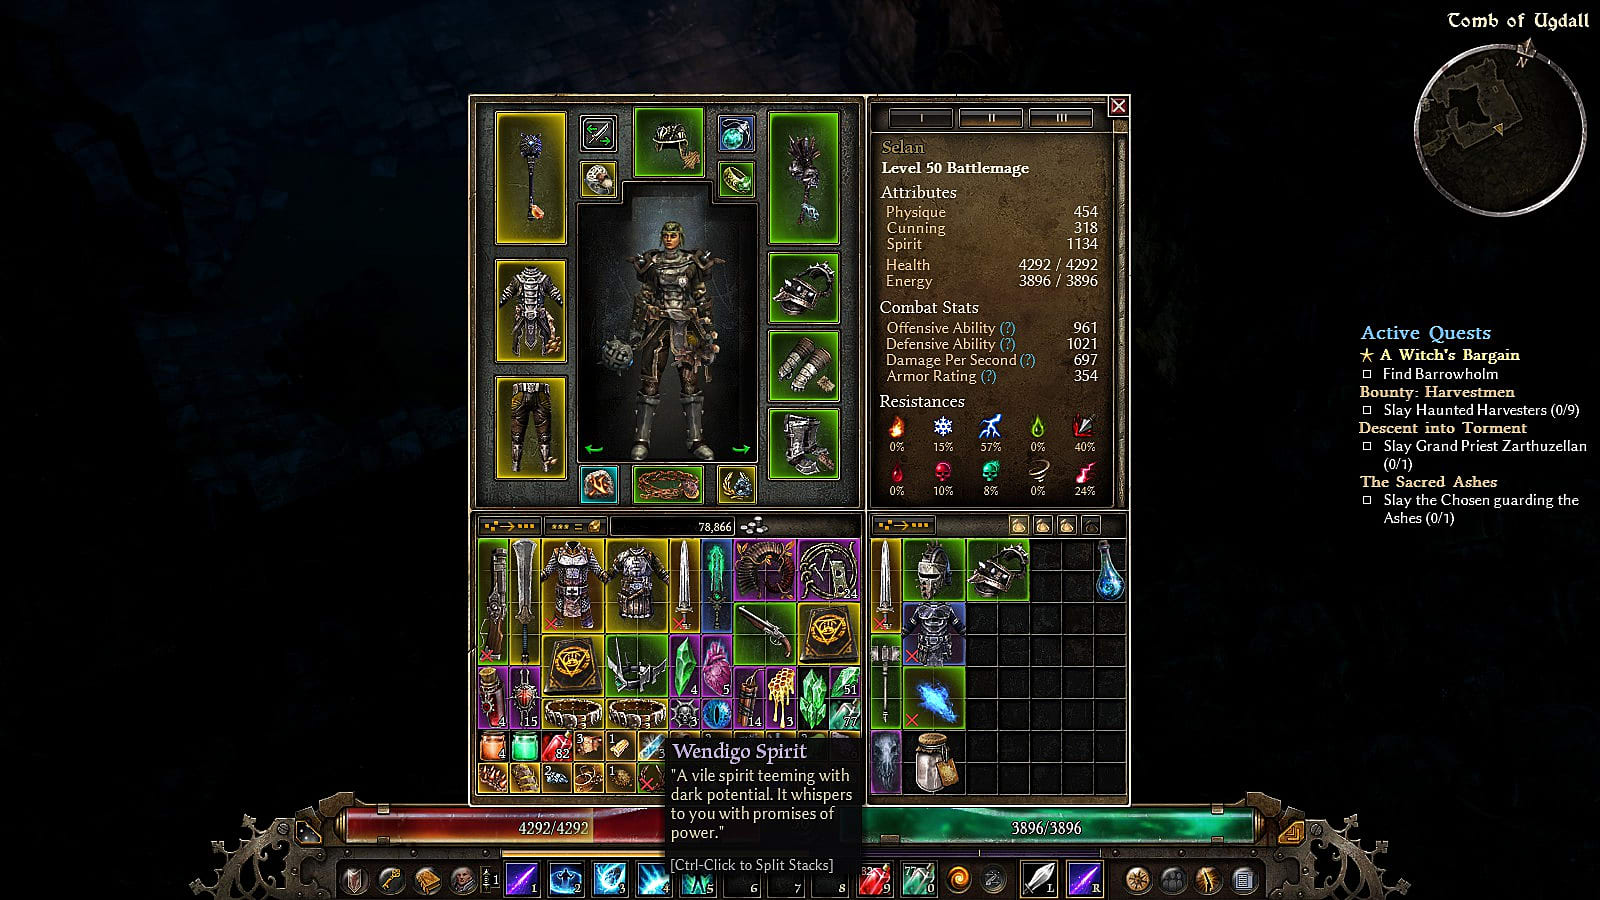 Grim Dawn Ashes Of Malmouth Guide: Helping or Defeating